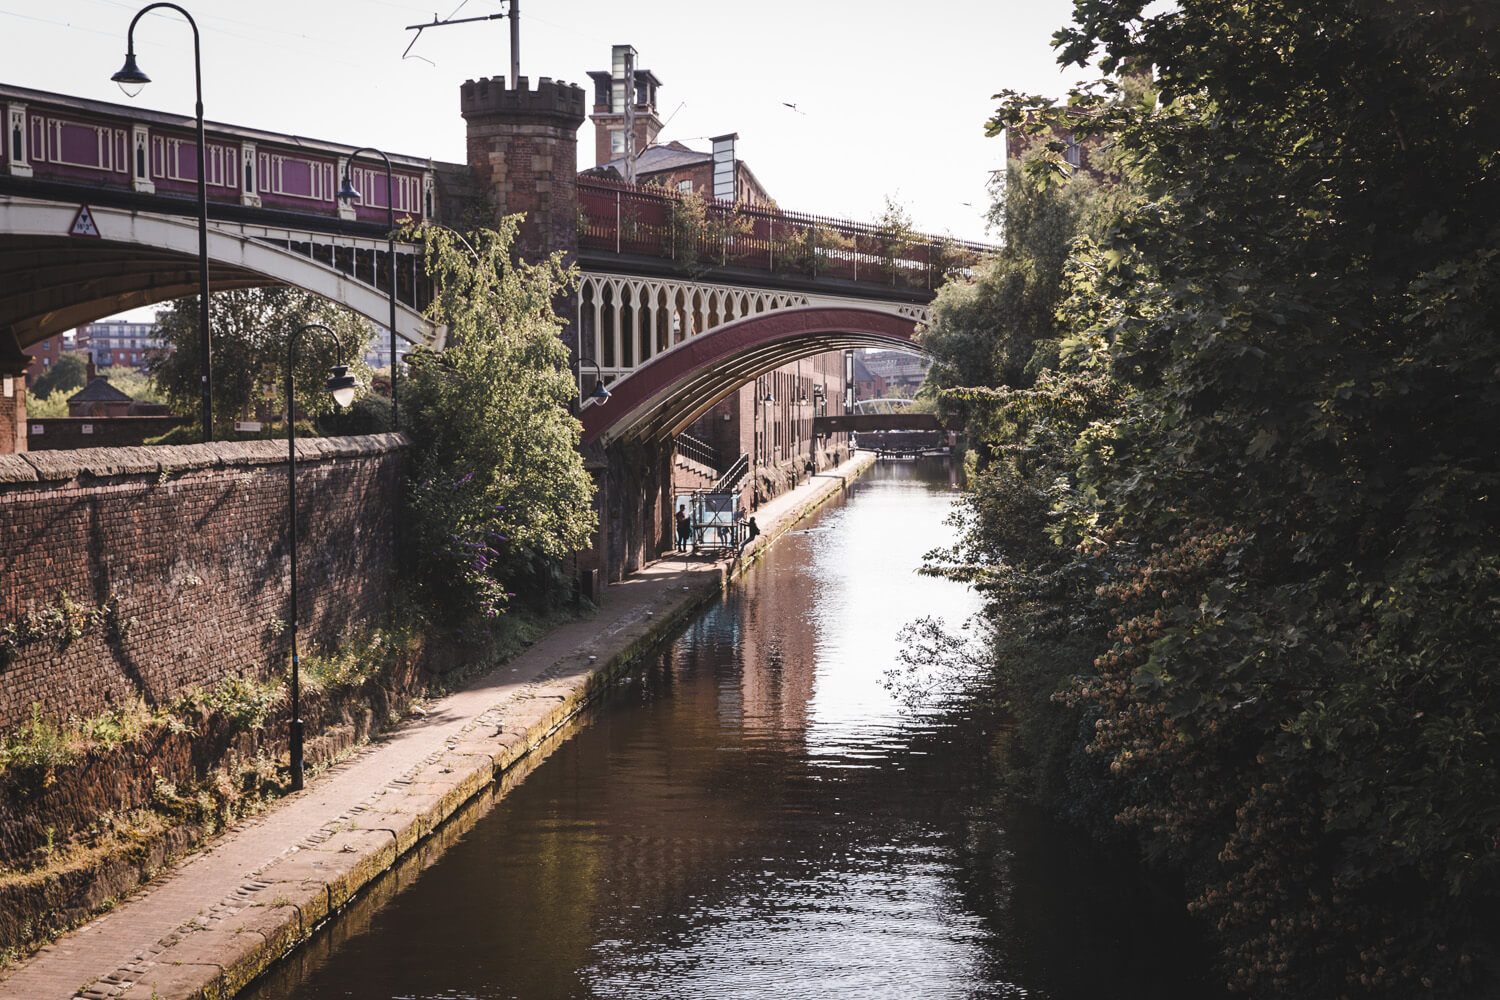 Canal in Manchester, UK with a bridge on top of it and trees growing next to it.